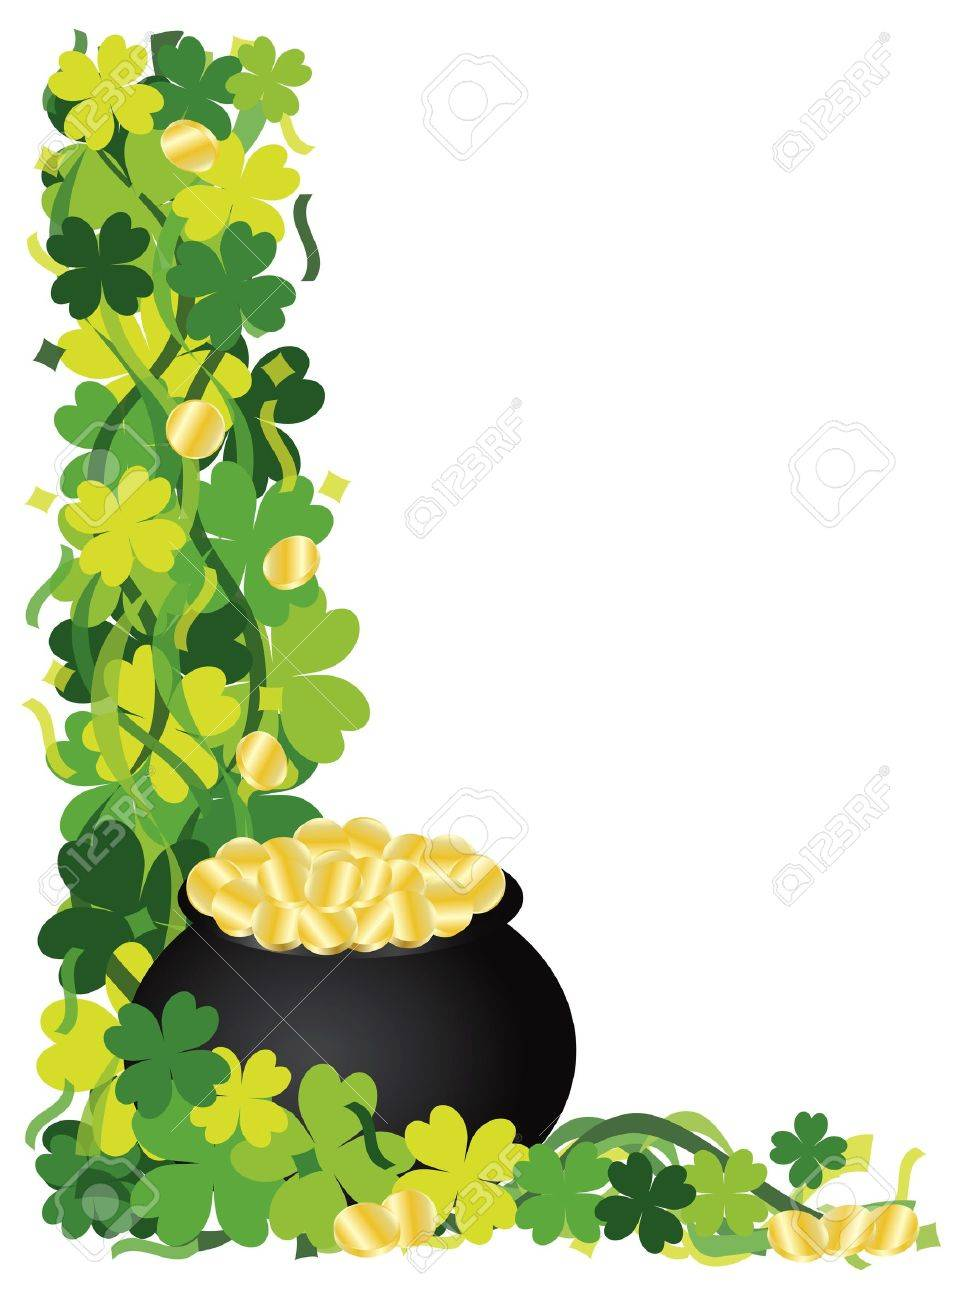 St Patricks Day Irish Lucky Four Leaf Clover with Pot of Gold and Confetti Border Illustration Stock Vector - 16640658